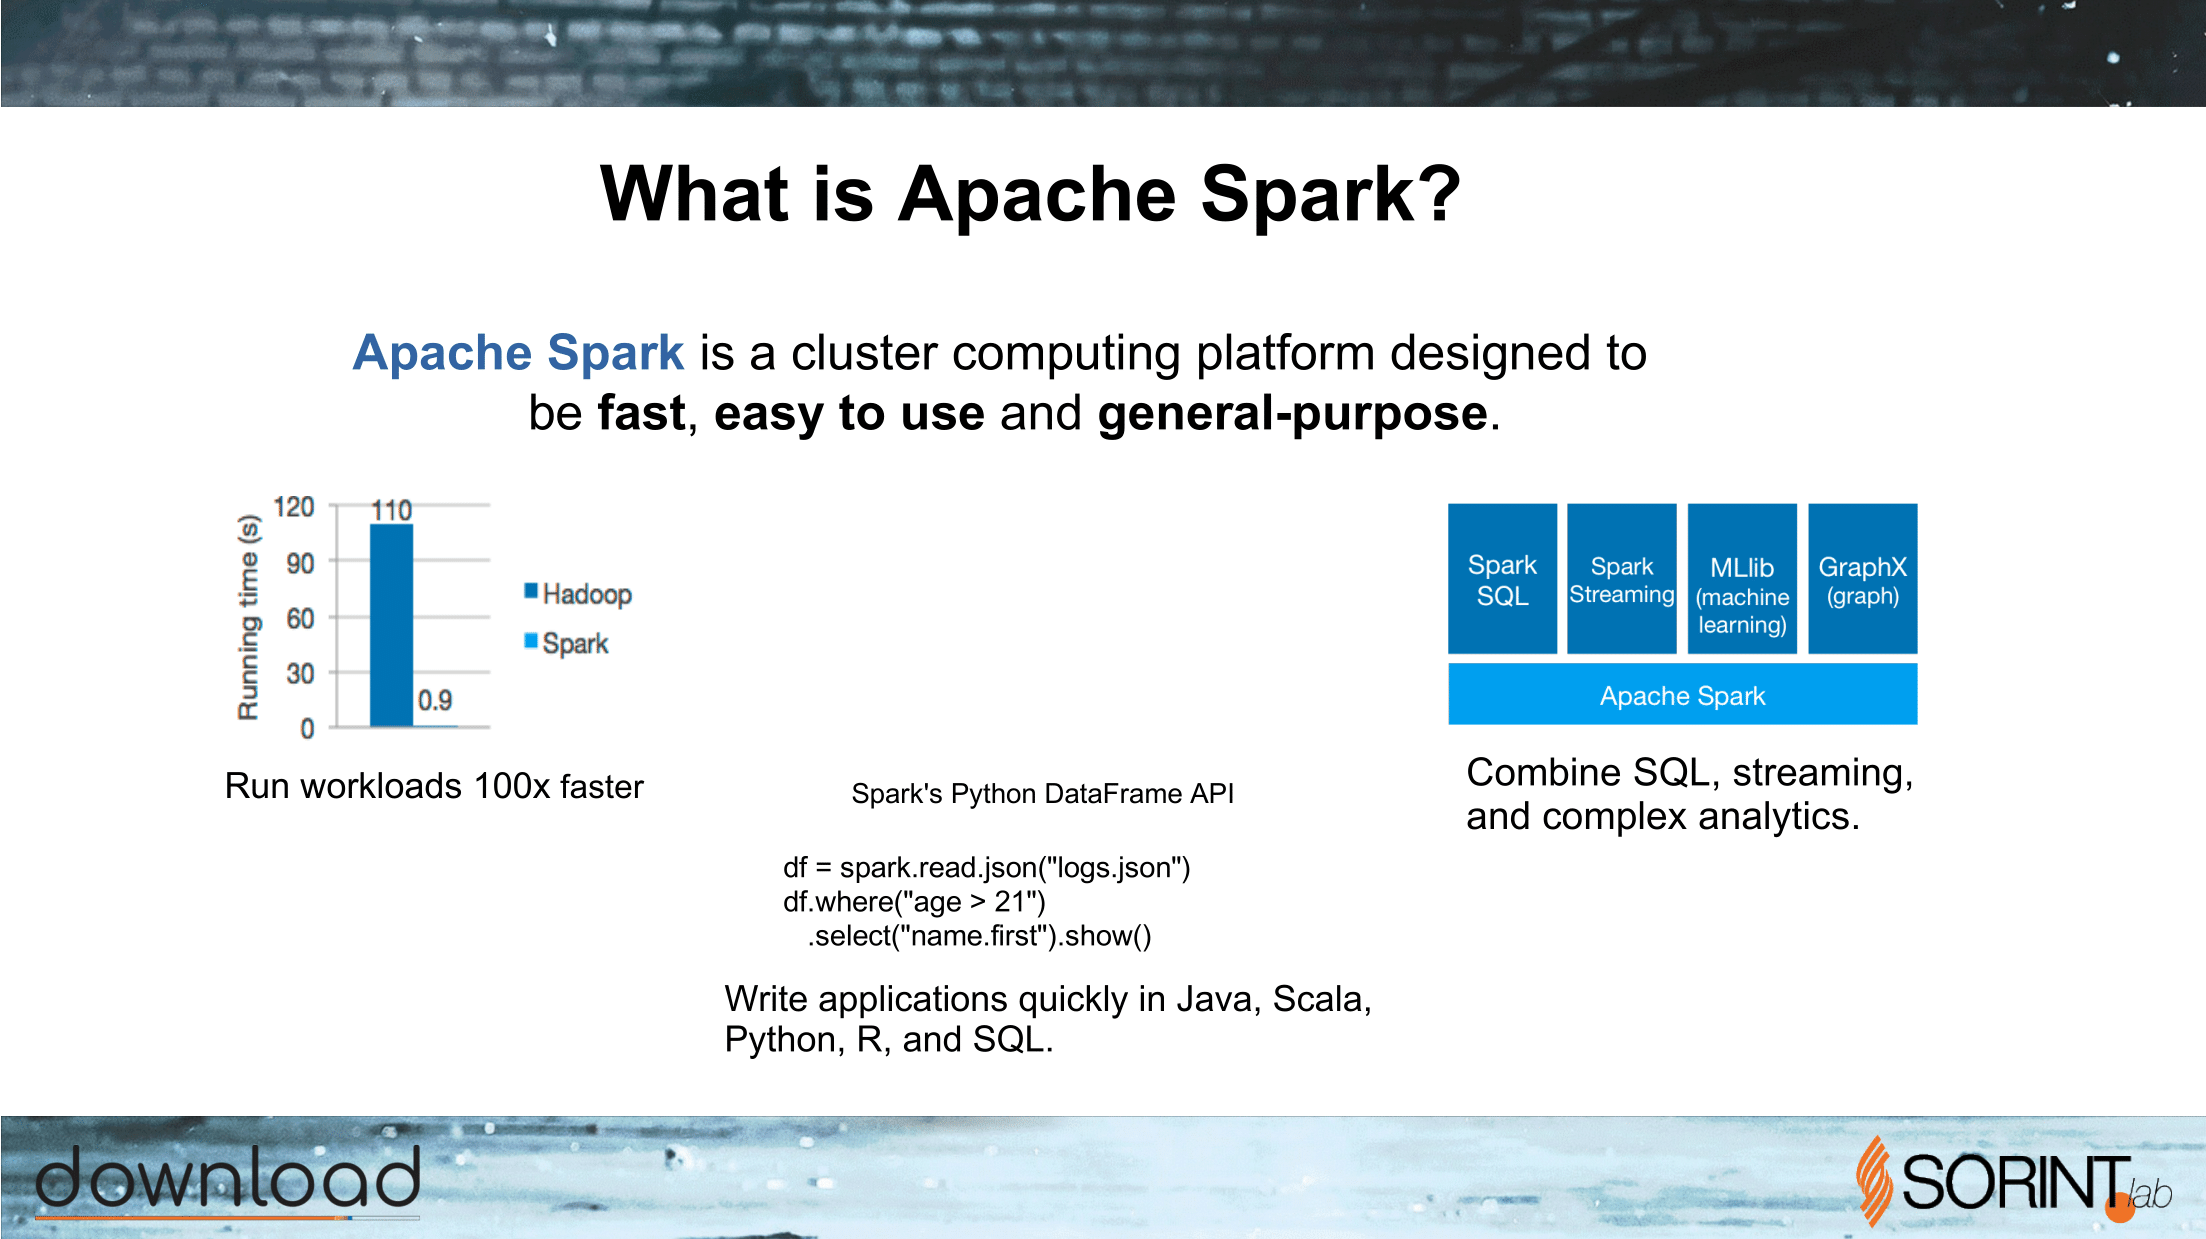 Apache_Spark_What_Why_When-05.png